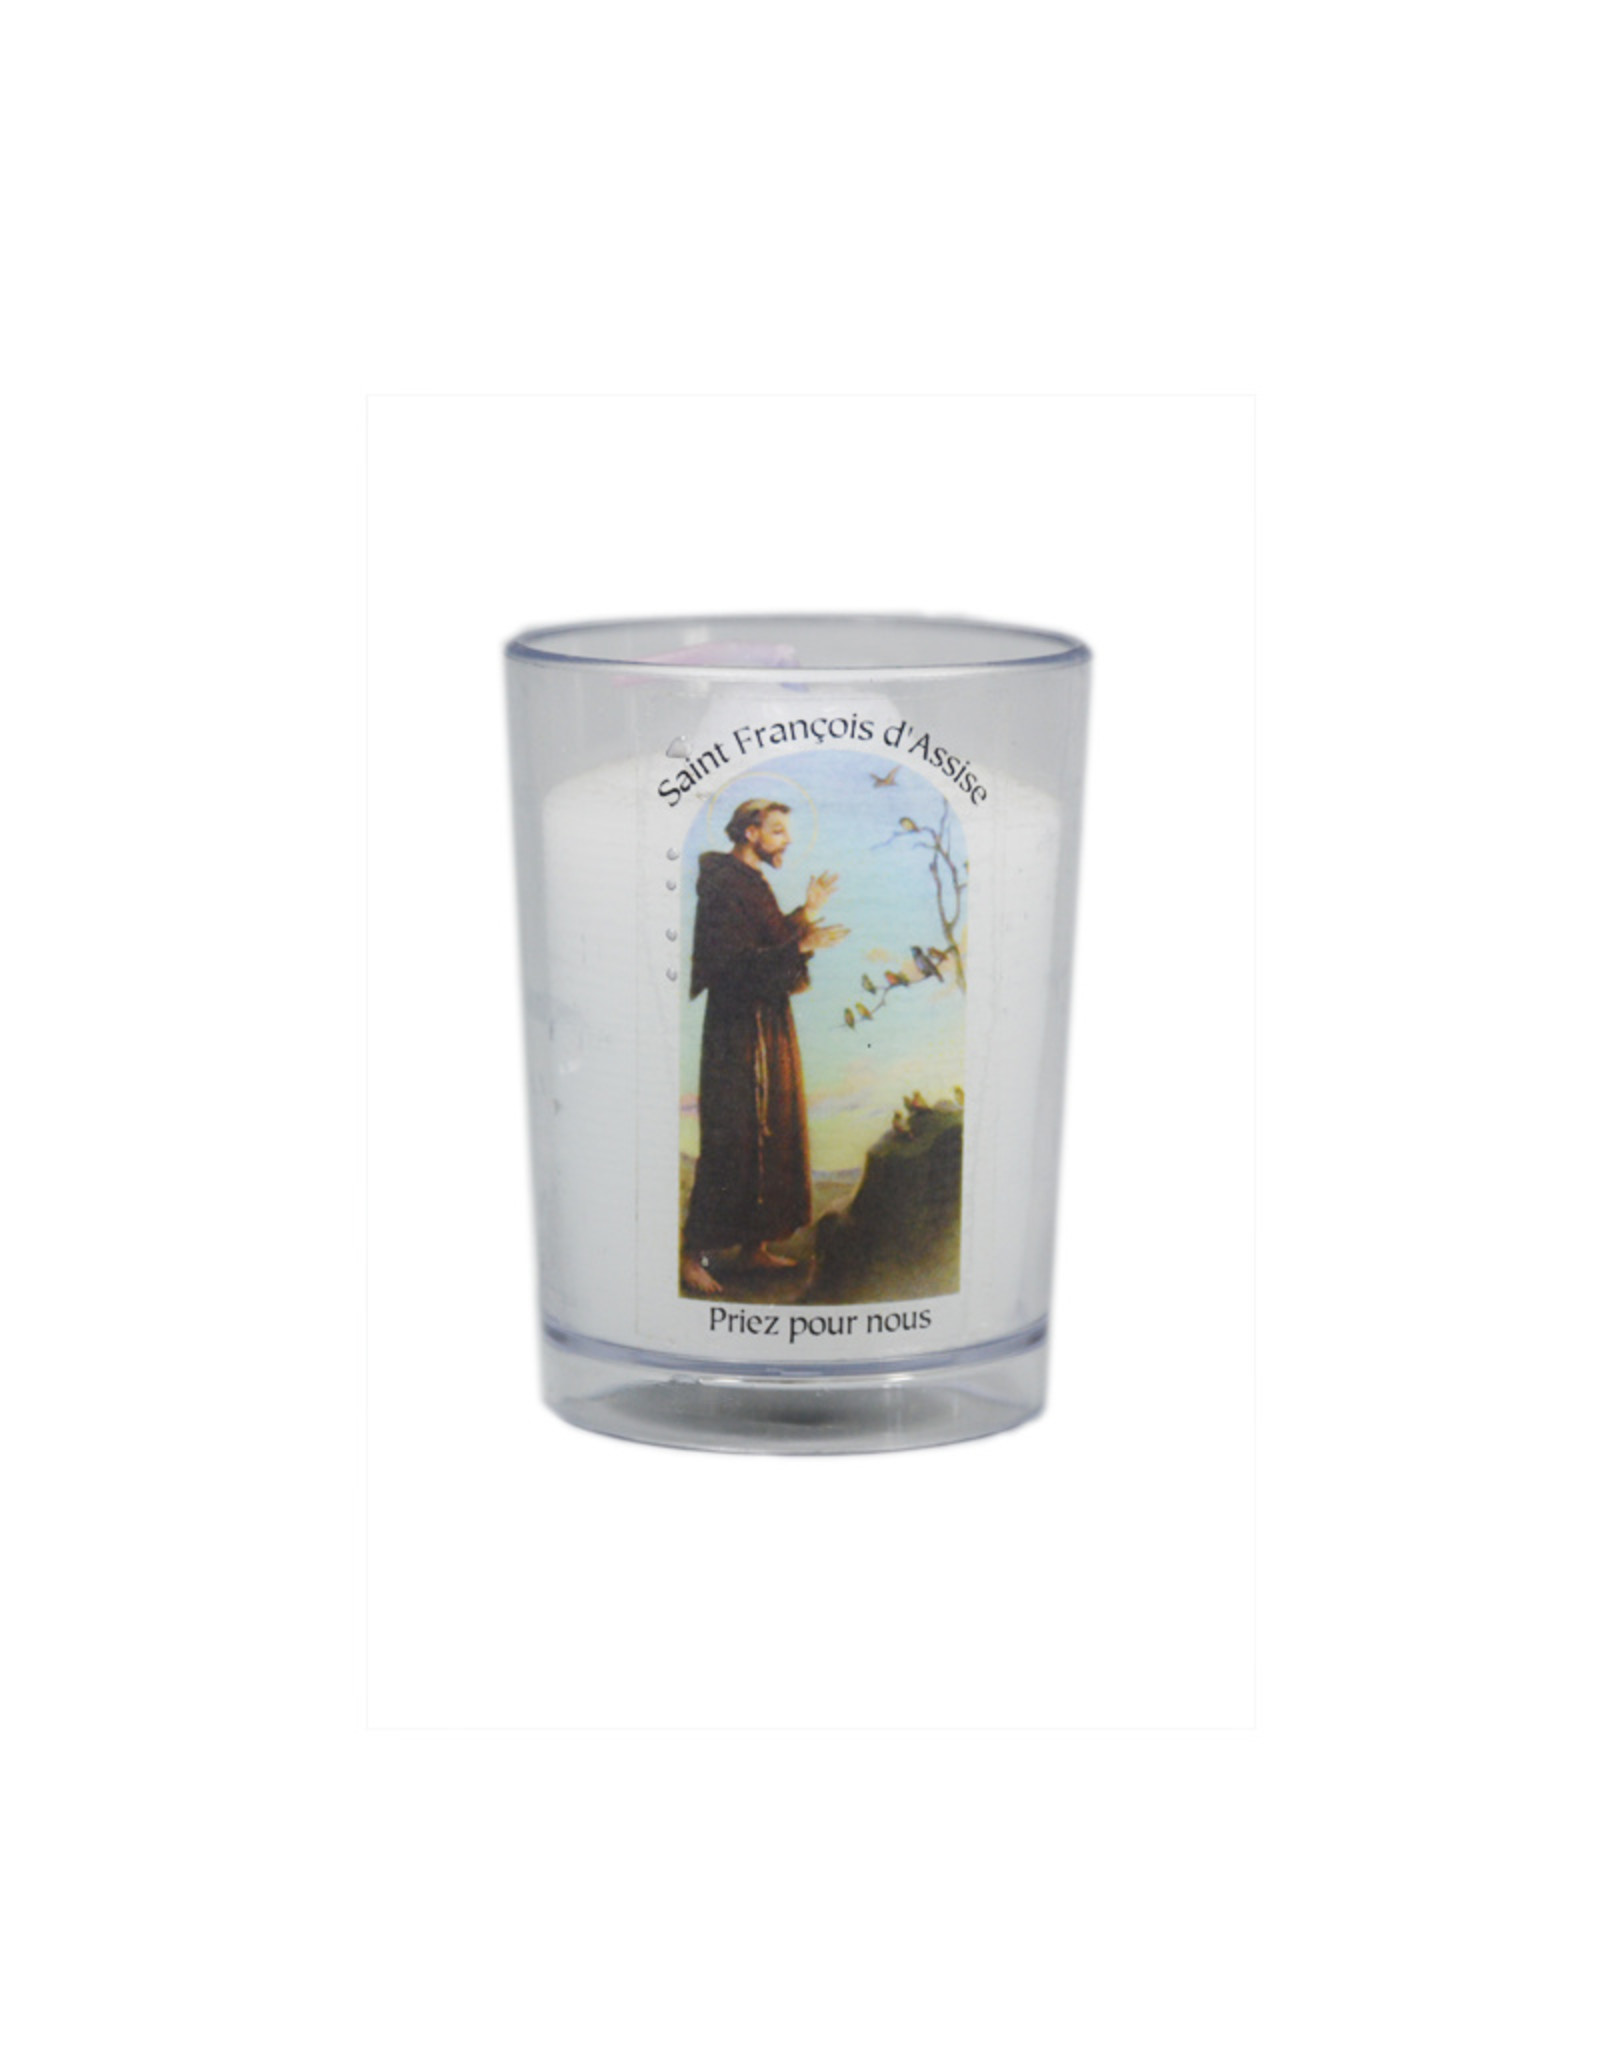 Chandelles Tradition / Tradition Candles Saint Francis of Assisi votive candle (french)